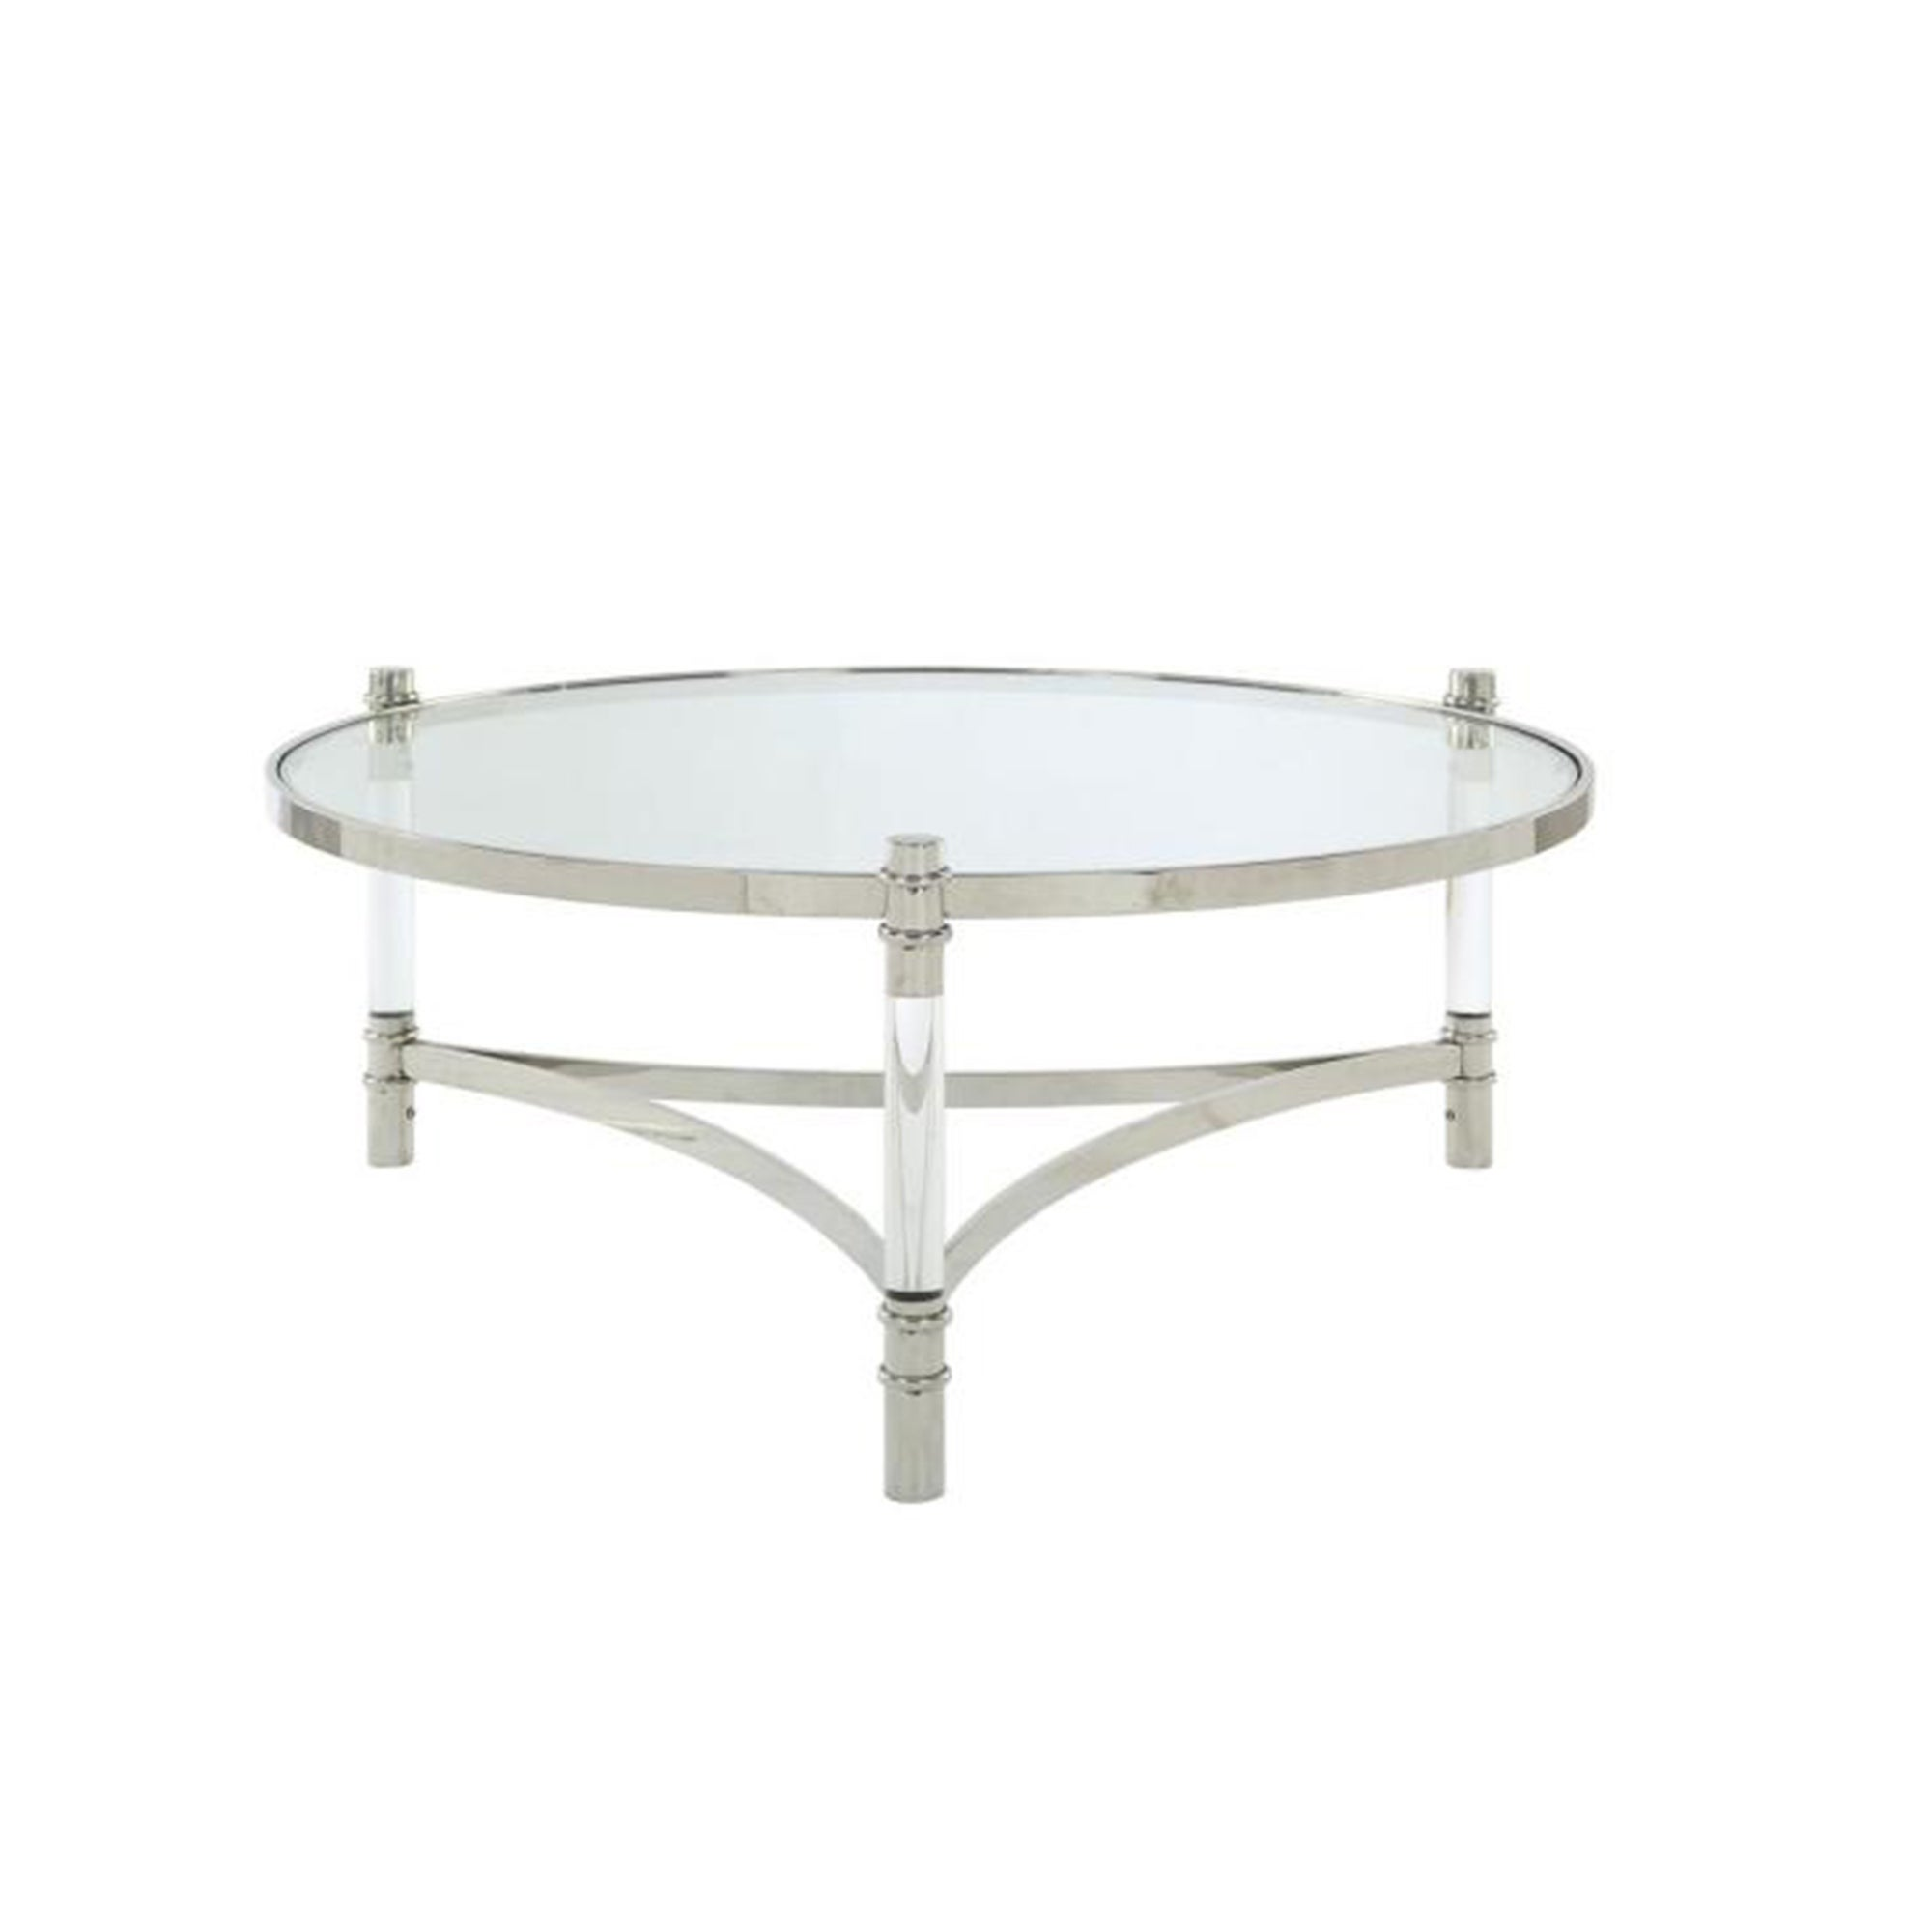 - Shop Acrylic And Stainless Steel Round Coffee Table With Glass Top